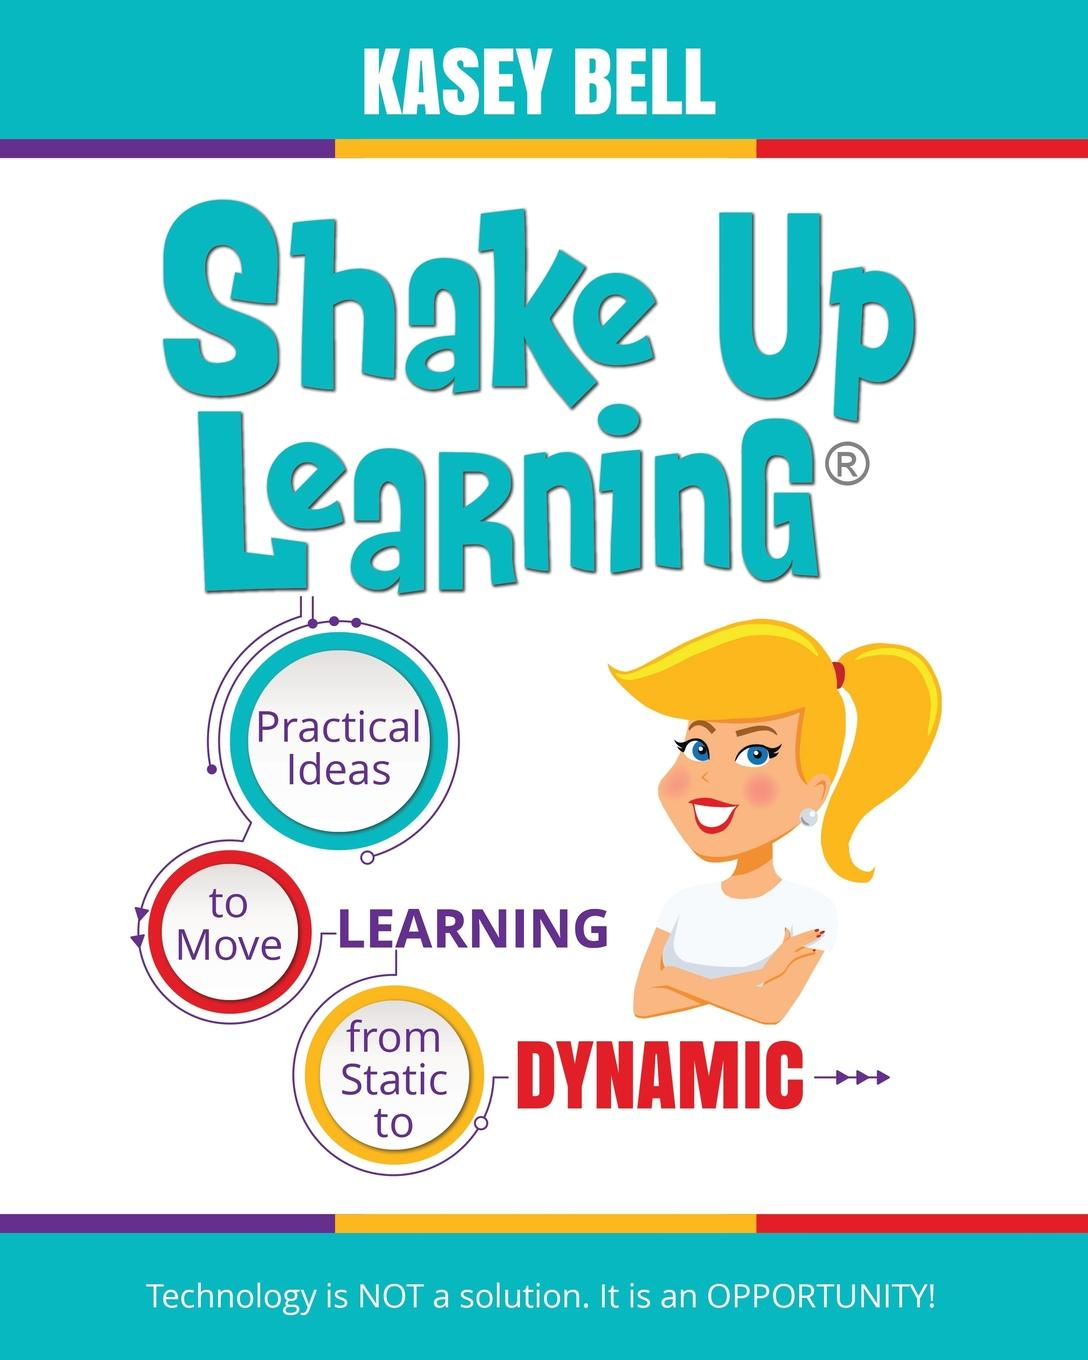 Kasey Bell Shake Up Learning. Practical Ideas to Move Learning from Static to Dynamic learning to live the love we promise